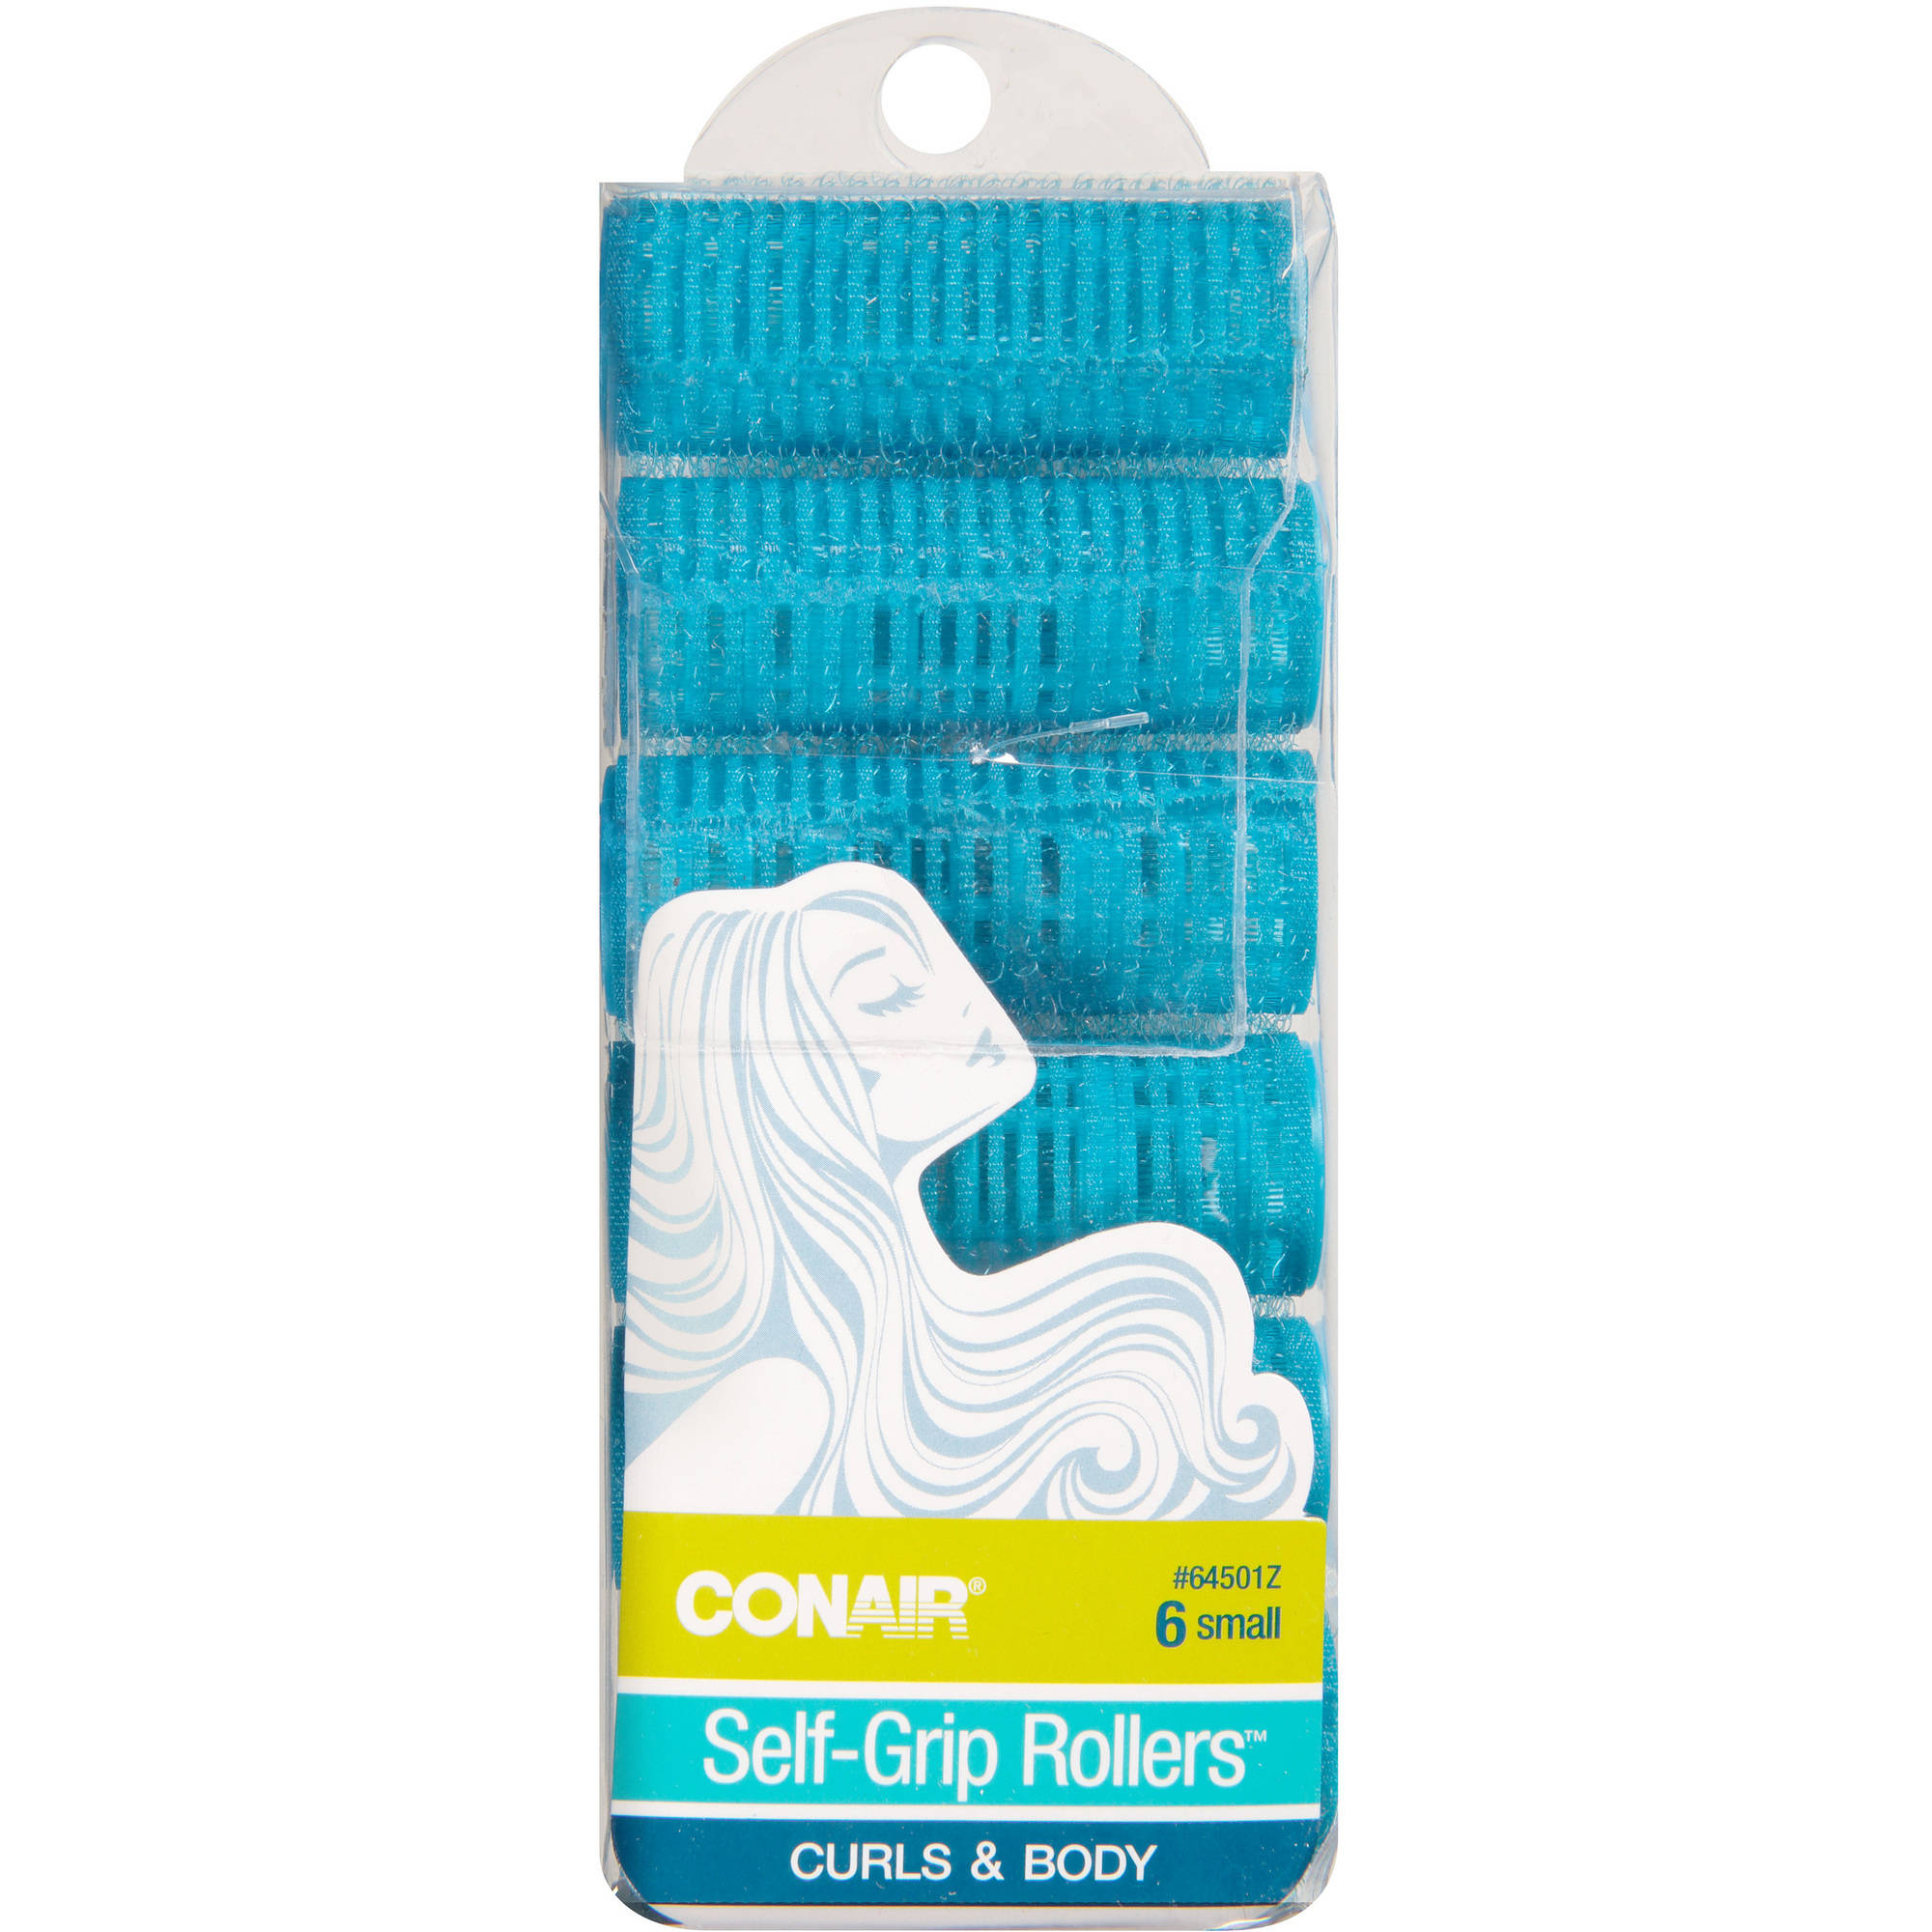 Conair Self-Grip Rollers, Small, 6 count